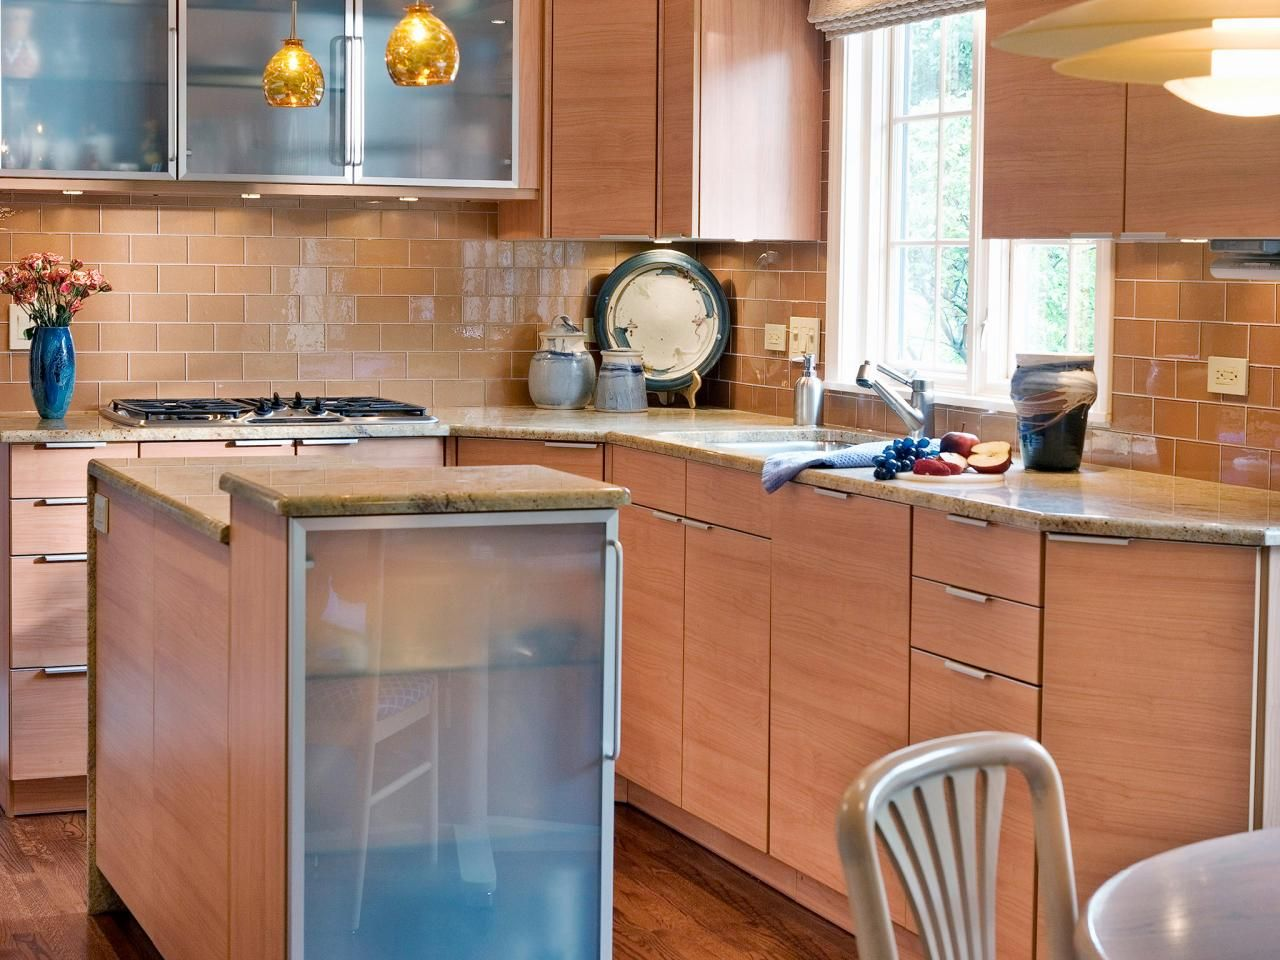 Pictures Of Kitchen Cabinets Beautiful Storage & Display Options Interesting European Kitchen Design Review